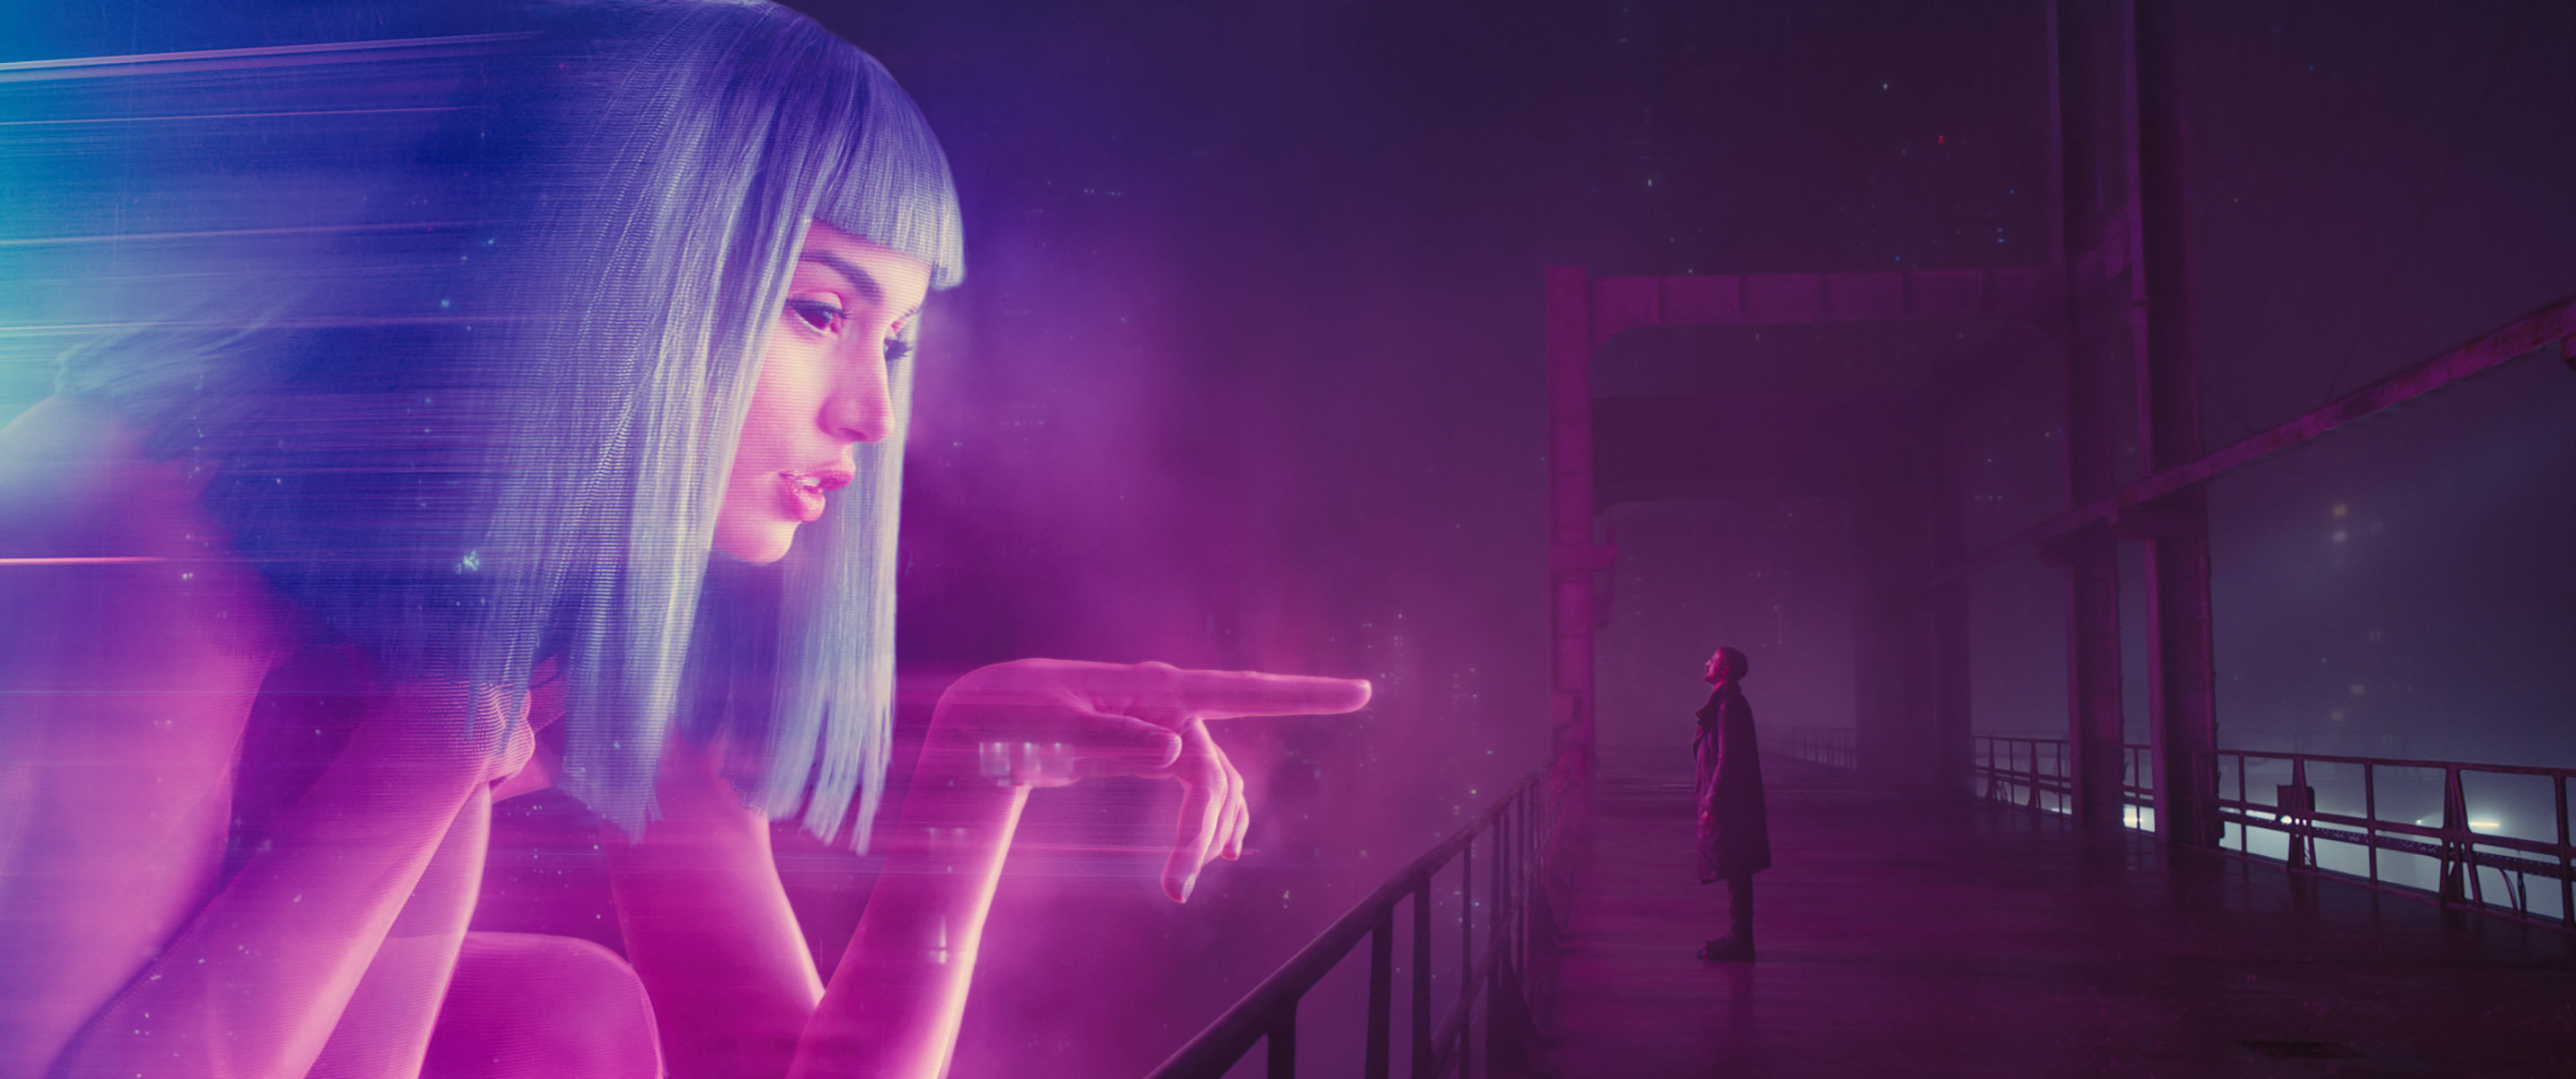 Future of retail is AI blade runner